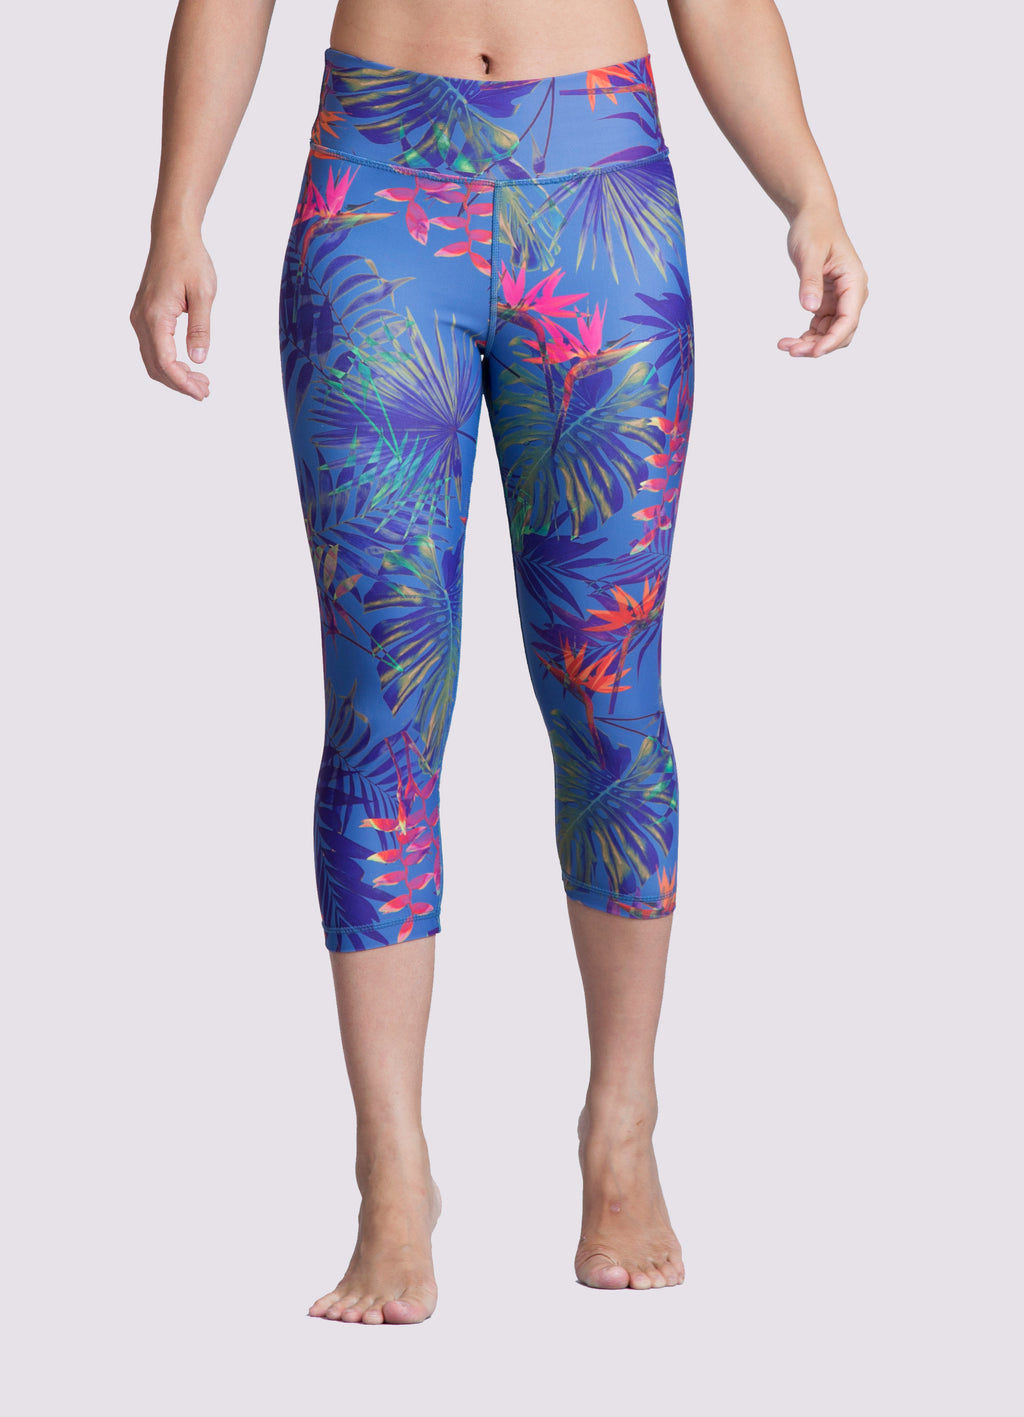 Indre Capris Leggings - OHSOSOM | Yoga Clothing & Accessories